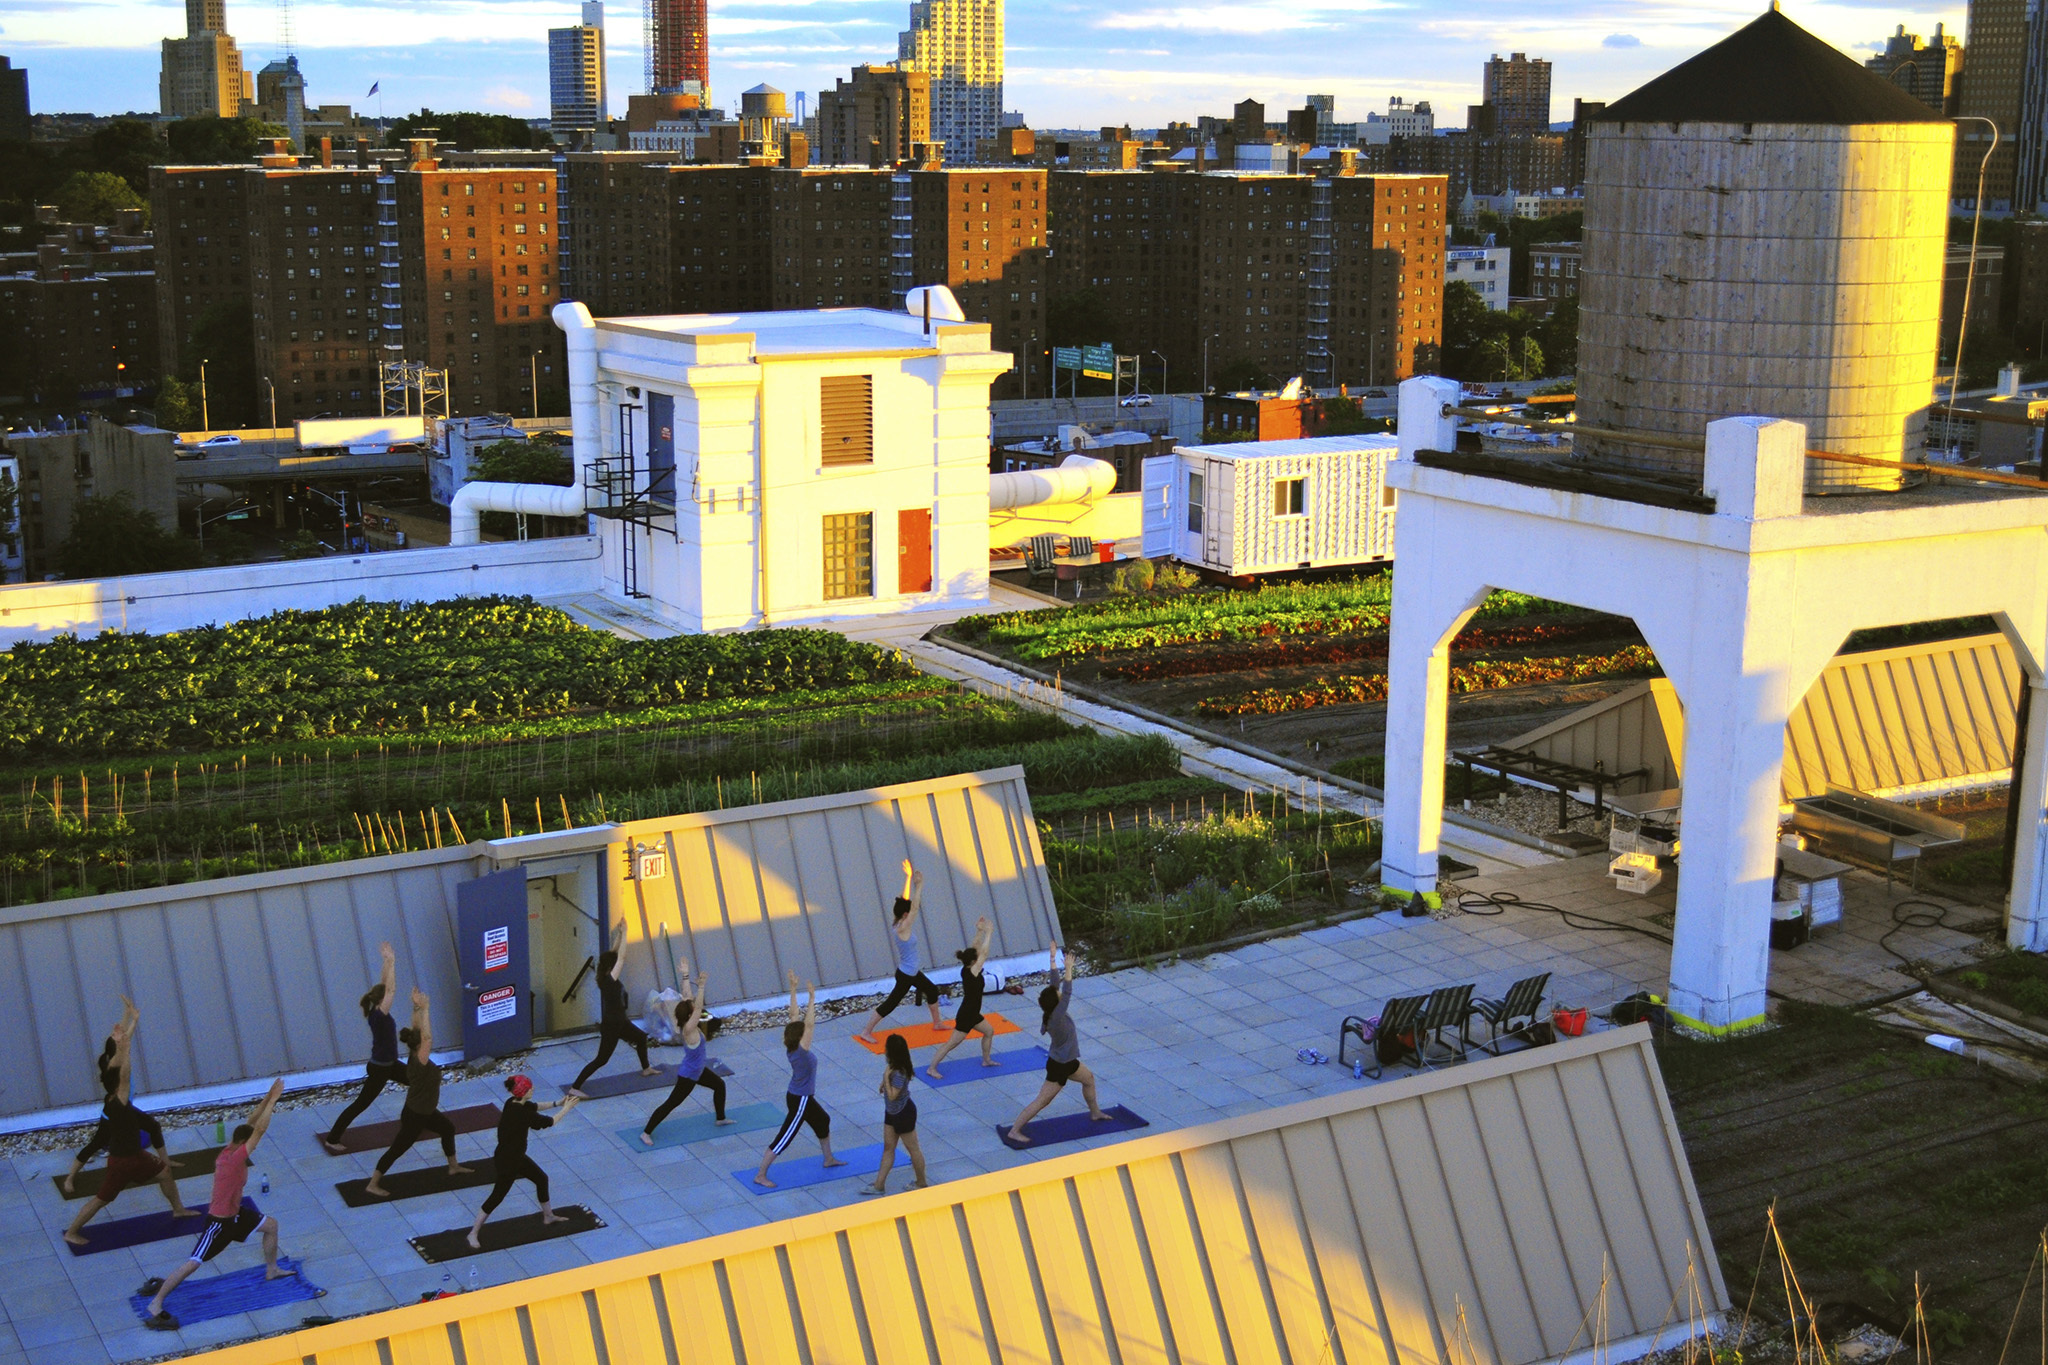 Check out these outdoor fitness classes in NYC